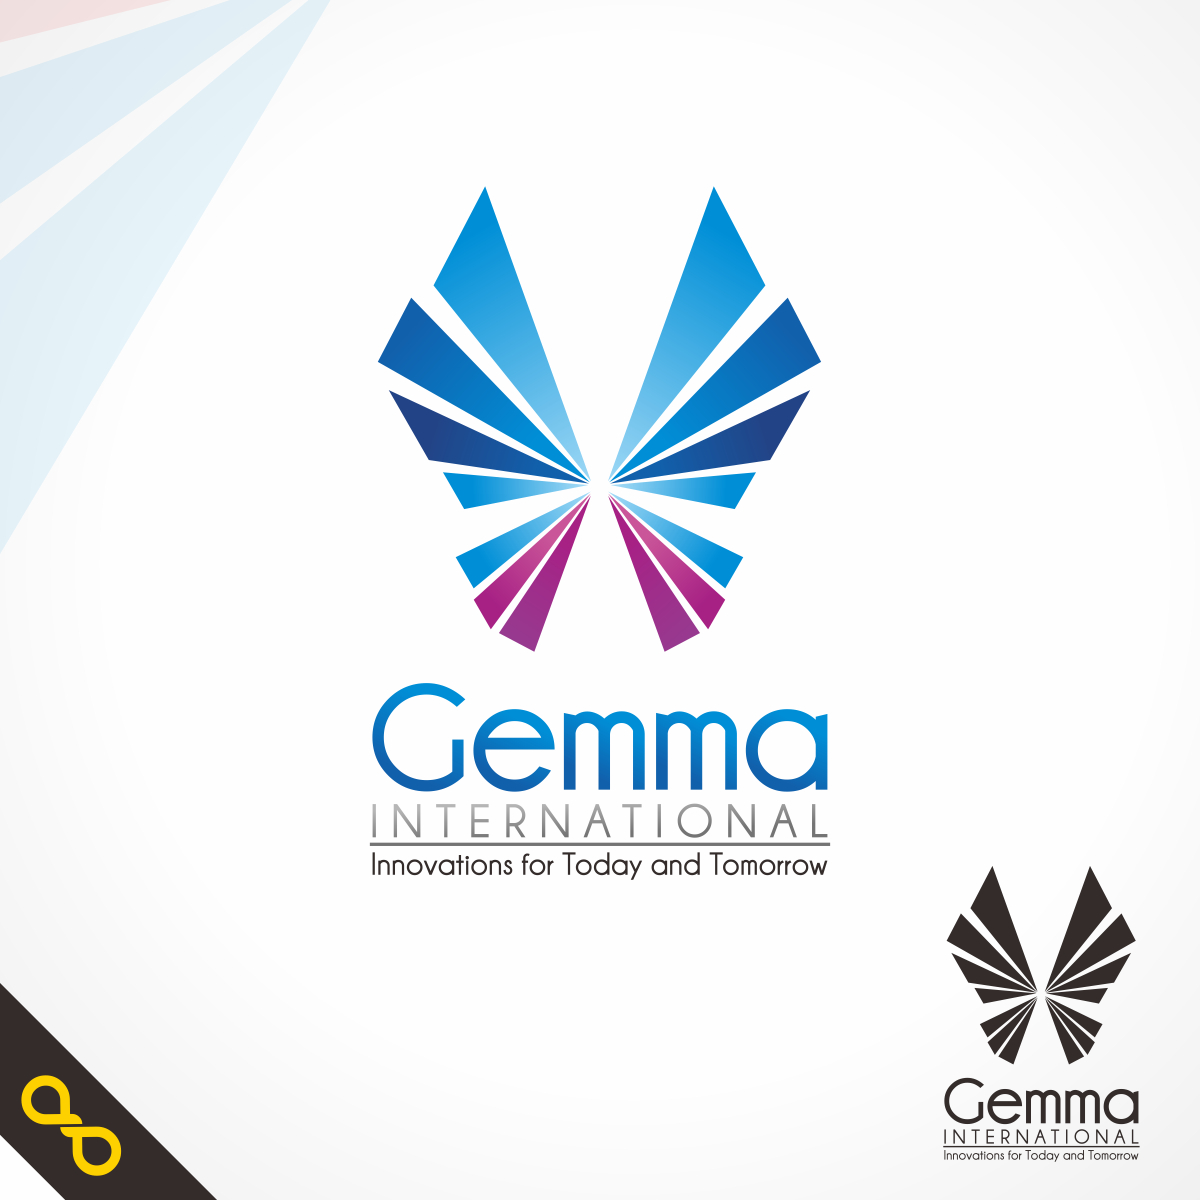 Logo Design by PJD - Entry No. 23 in the Logo Design Contest Artistic Logo Design for Gemma International.